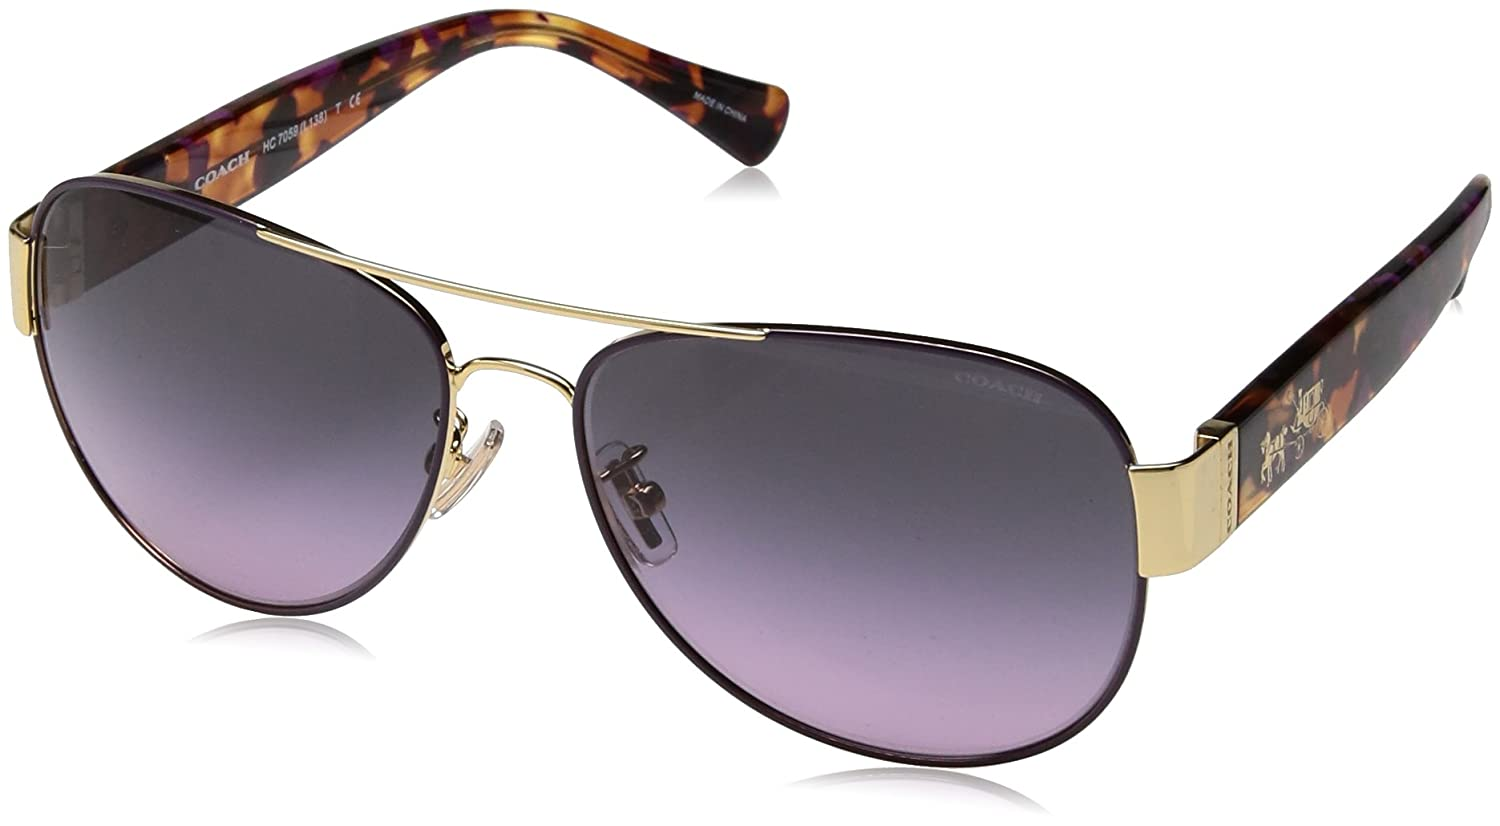 ae4b2980d5 Amazon.com  Coach Womens L138 Sunglasses (HC7059) Gold Brown Metal -  Polarized - 58mm  Clothing